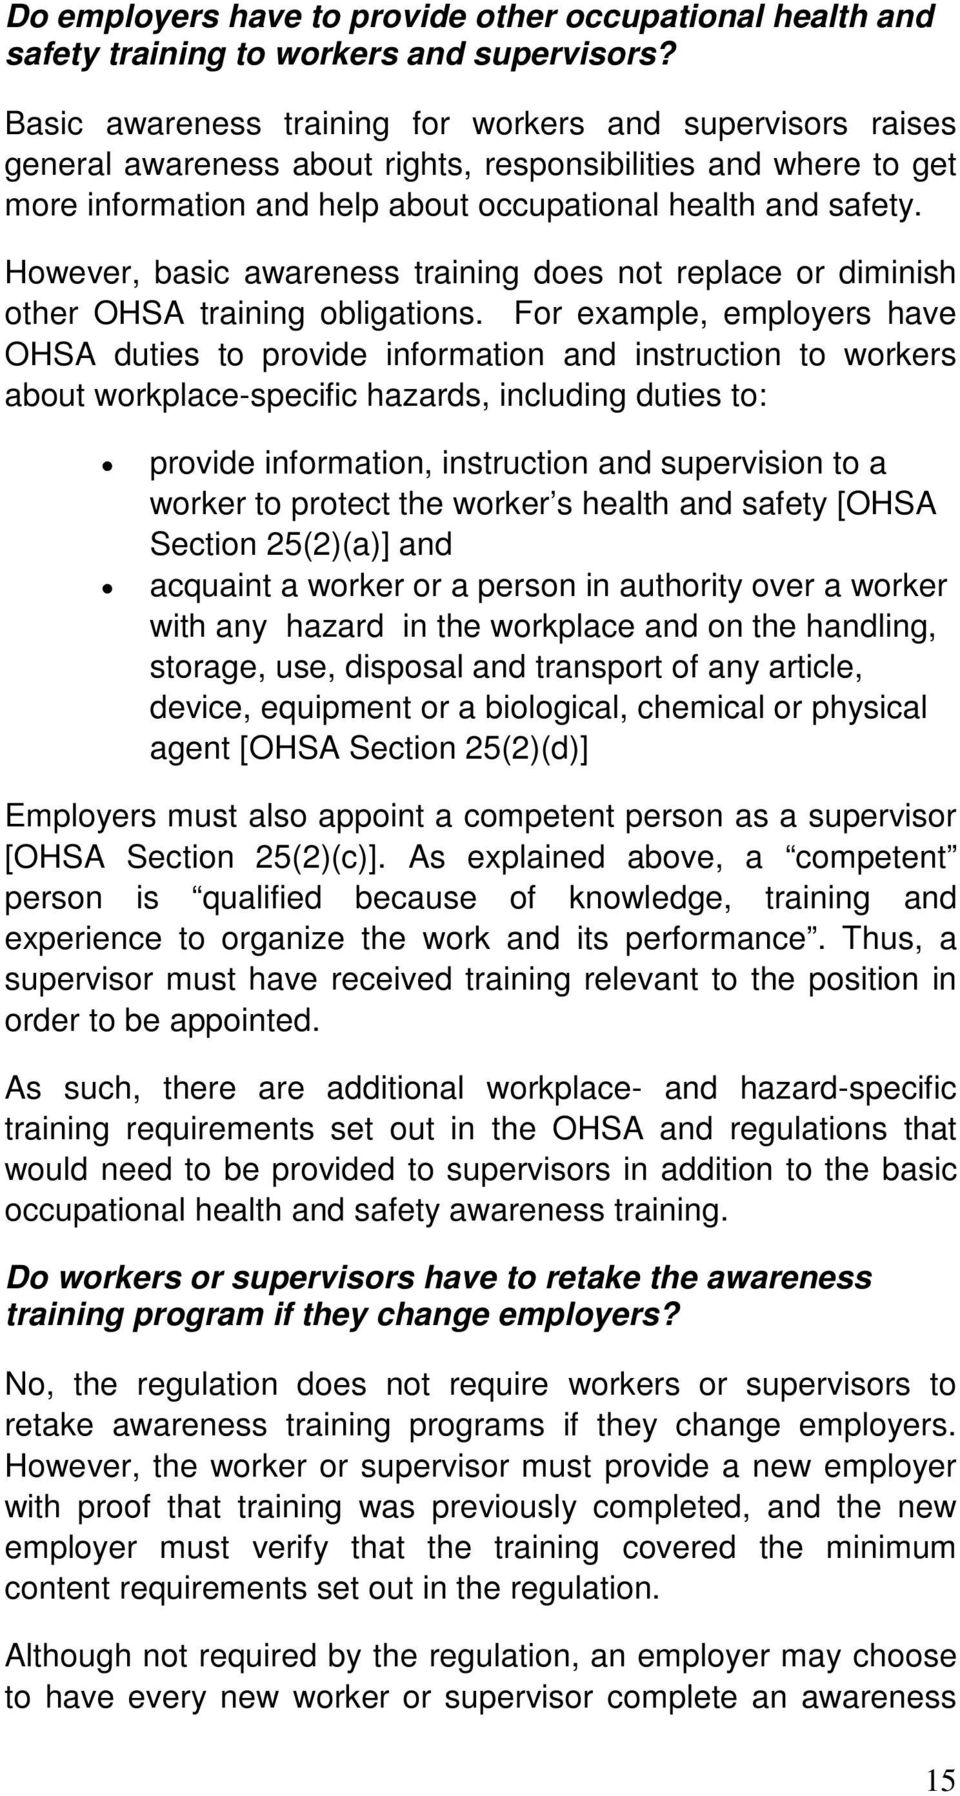 However, basic awareness training does not replace or diminish other OHSA training obligations.